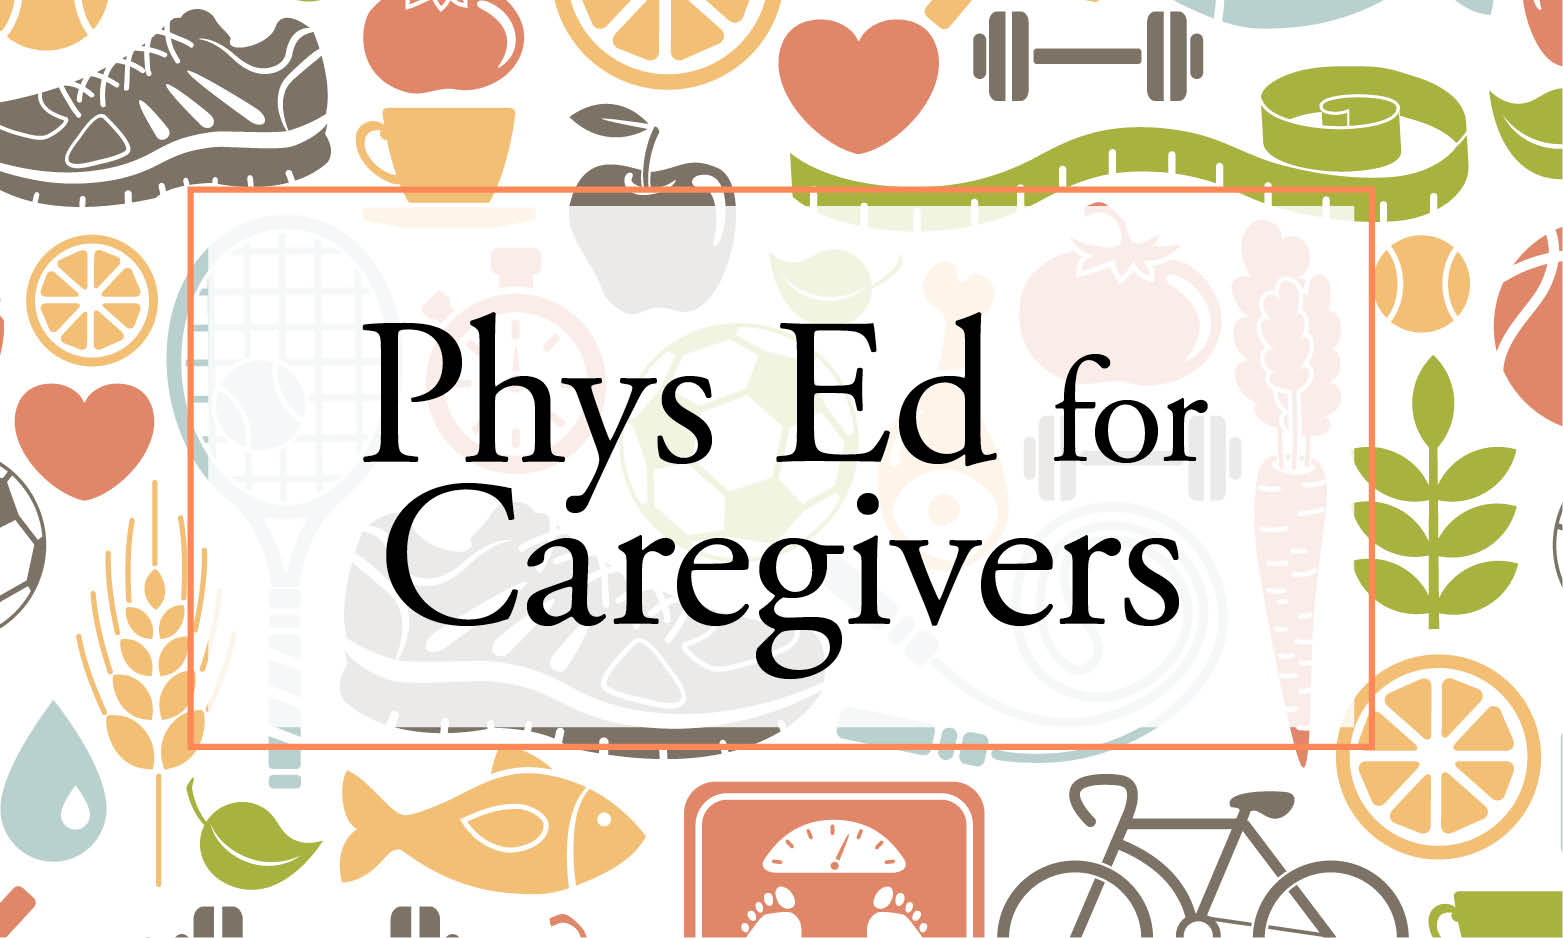 phys ed for caregivers